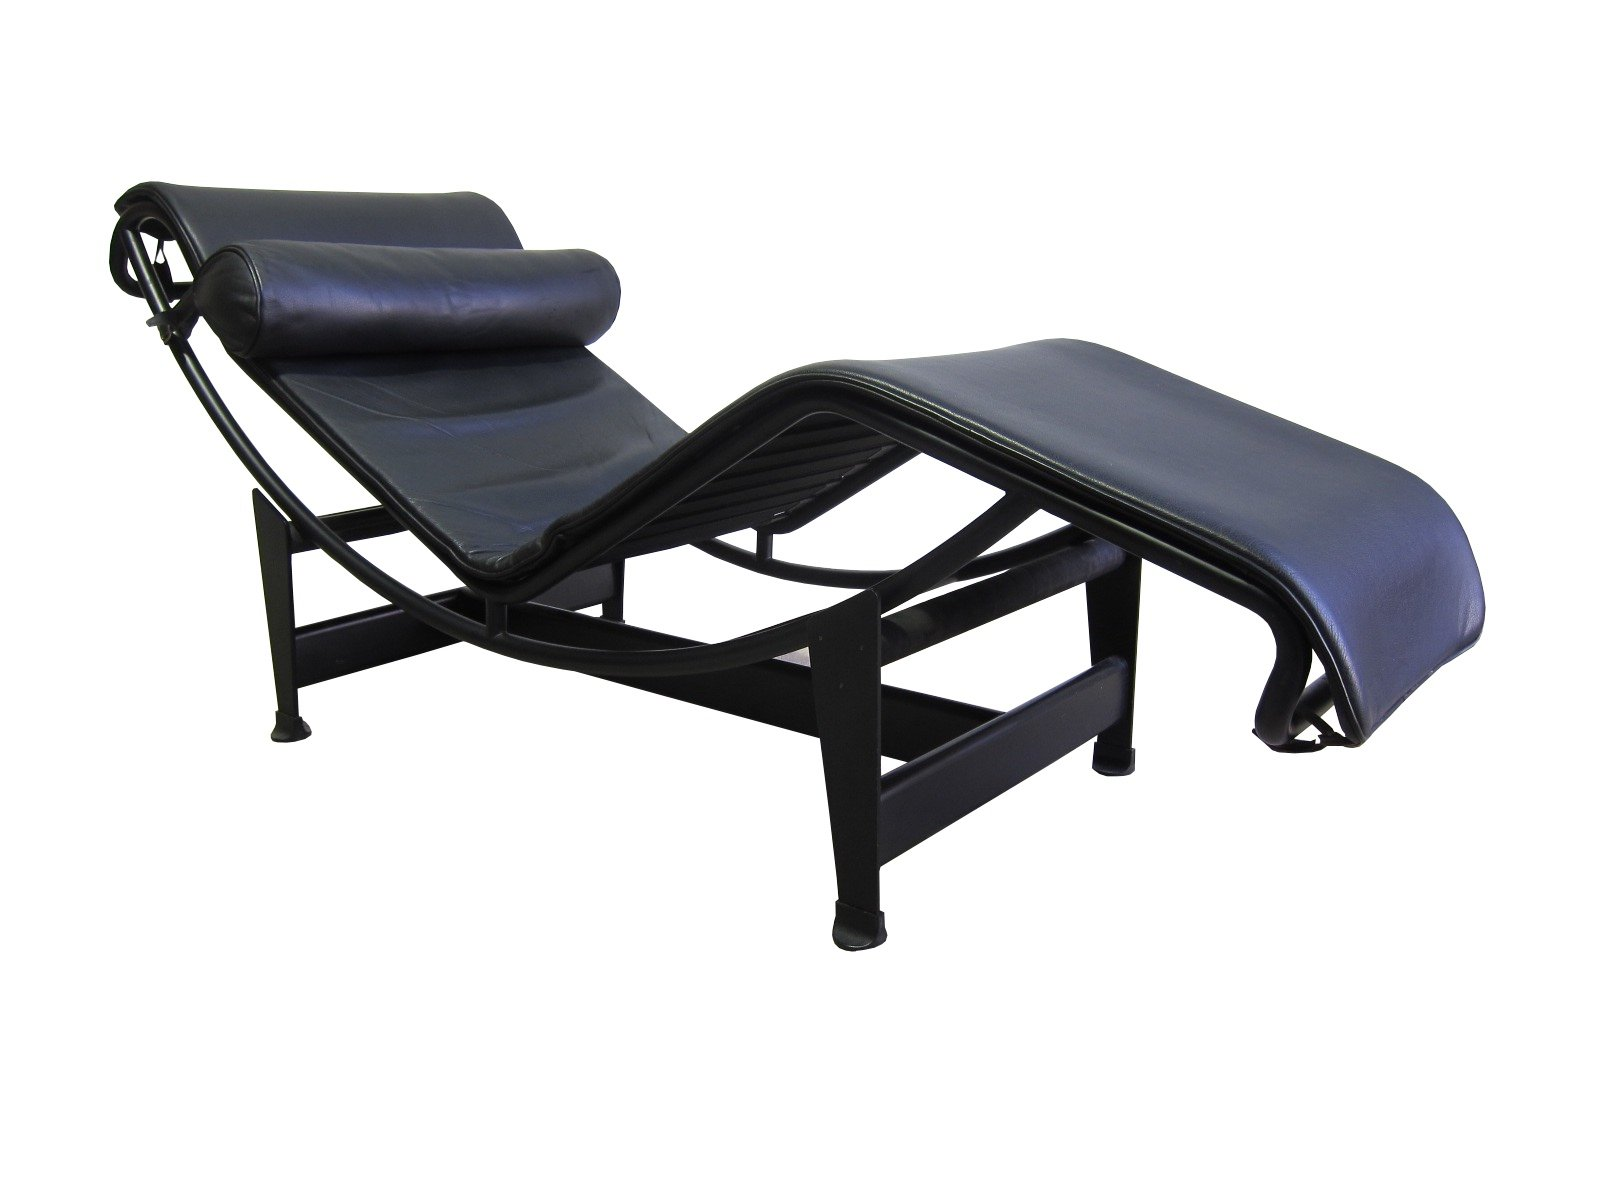 vintage lc4 chaise lounge by le corbusier for cassina 1980s for sale at pamono. Black Bedroom Furniture Sets. Home Design Ideas